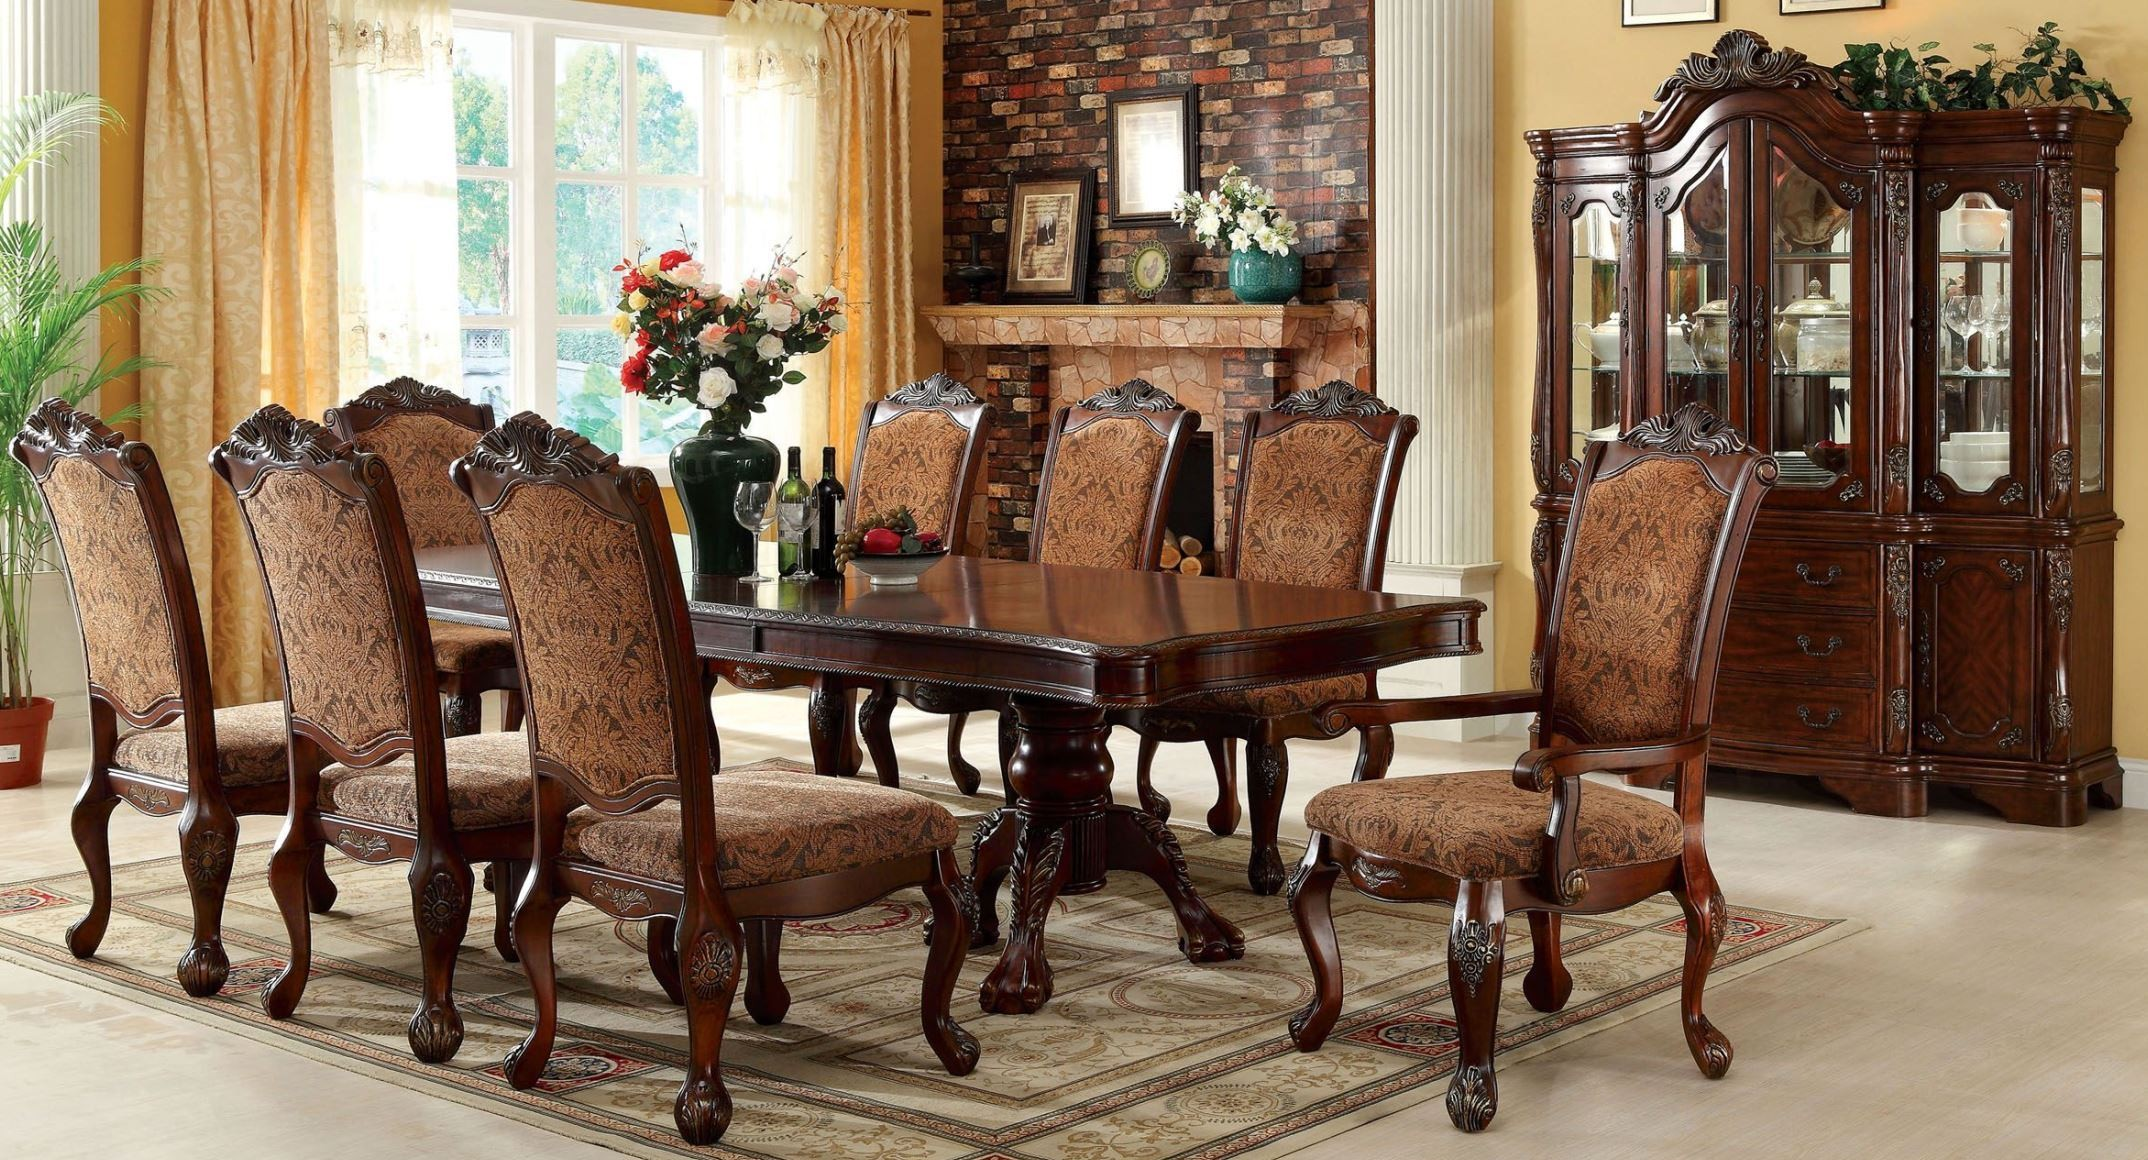 Cromwell Antique Cherry Formal Dining Room Set. Furniture Of America. 934620 Part 93